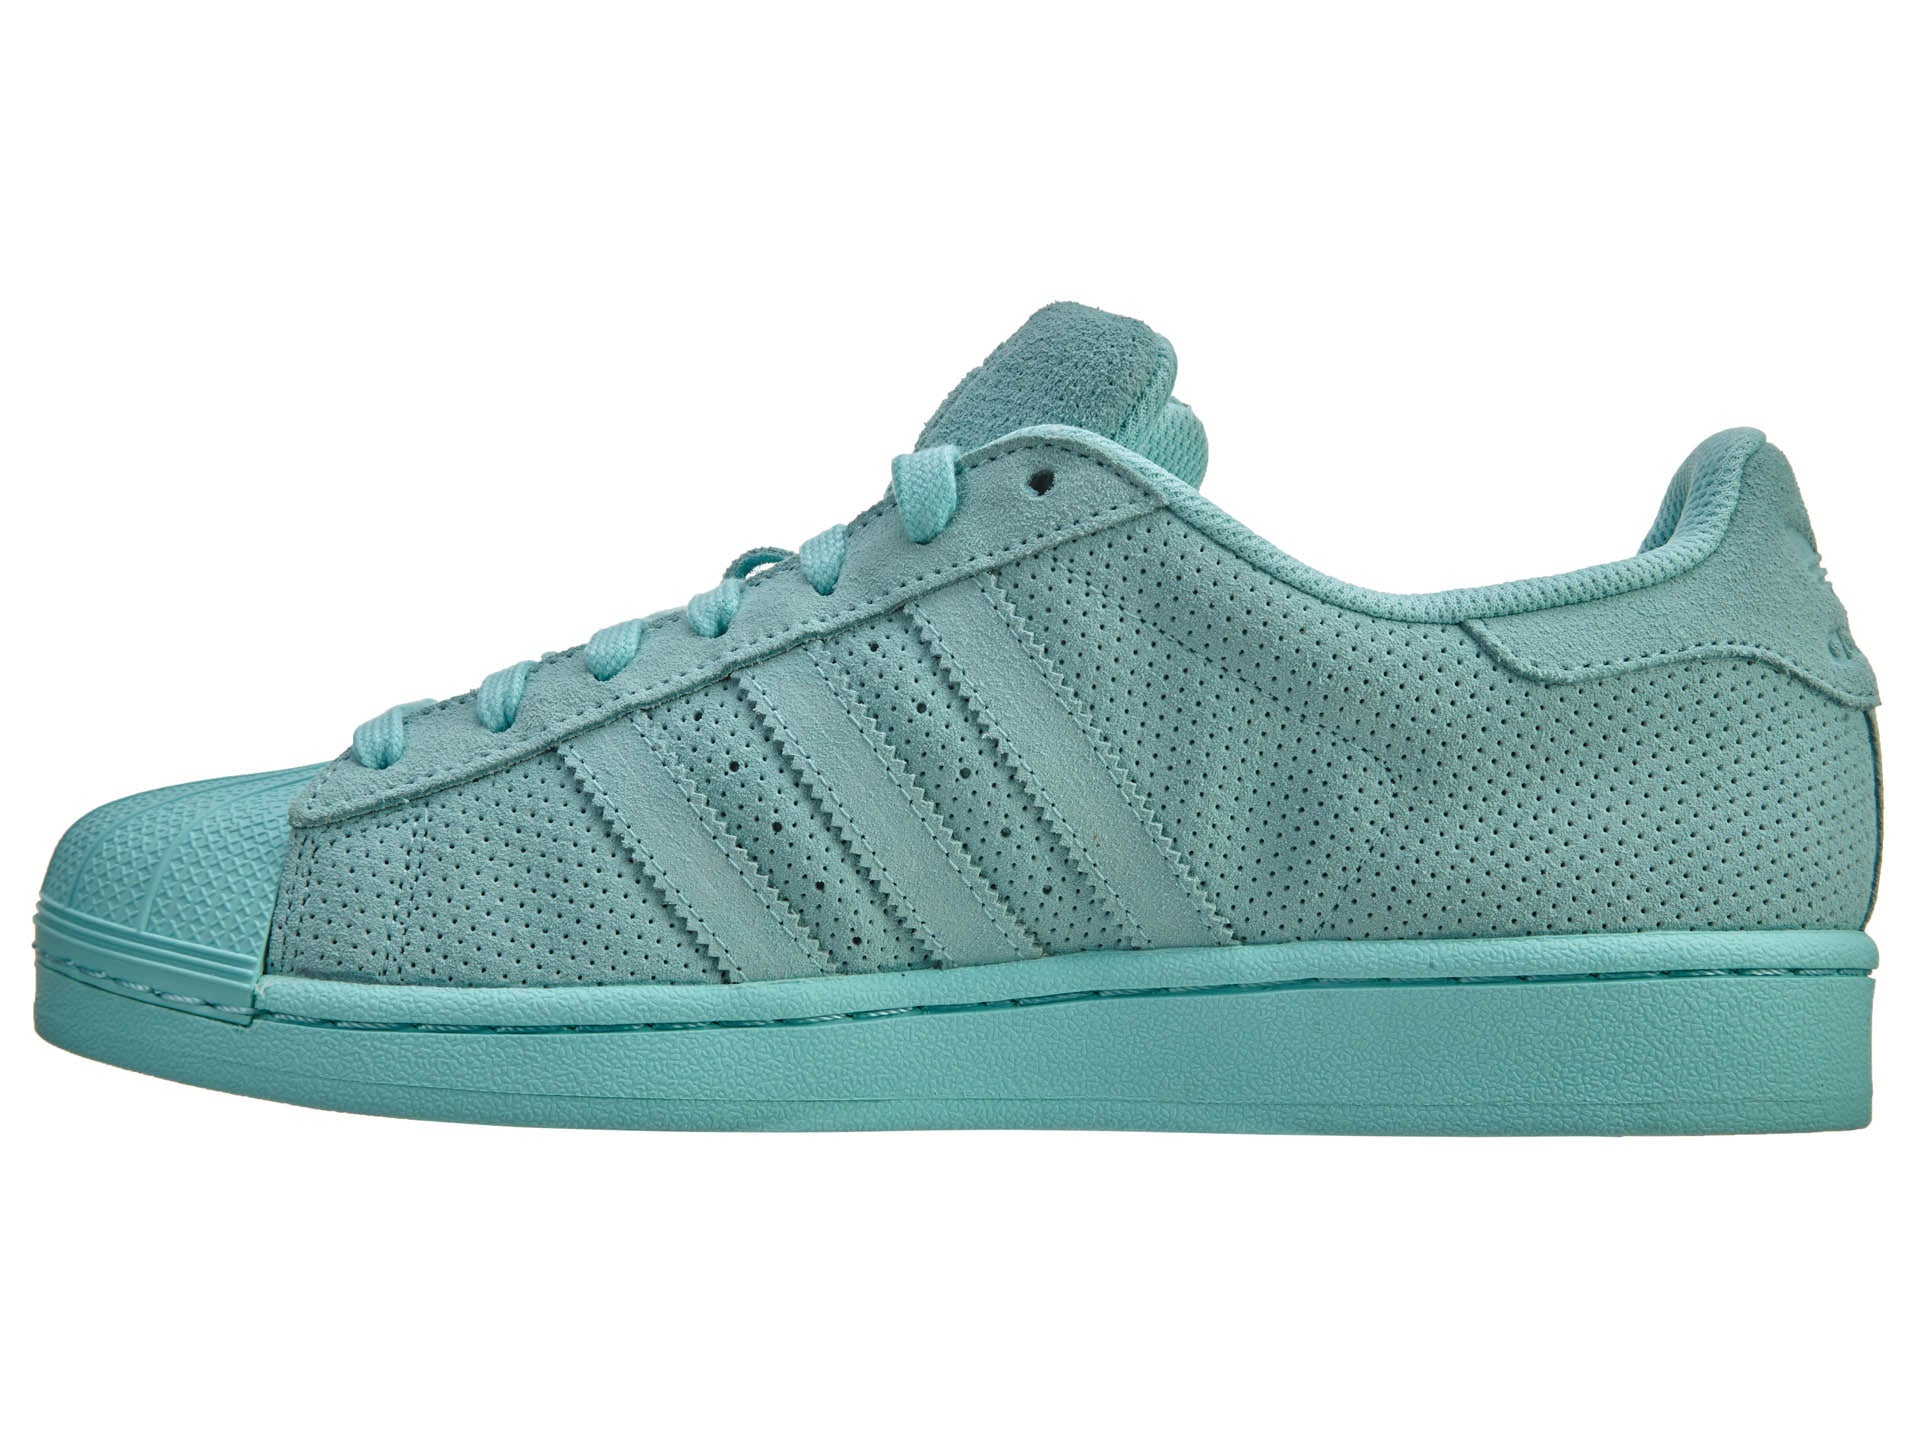 Adidas Superstar Rt Mens Style : Aq4916